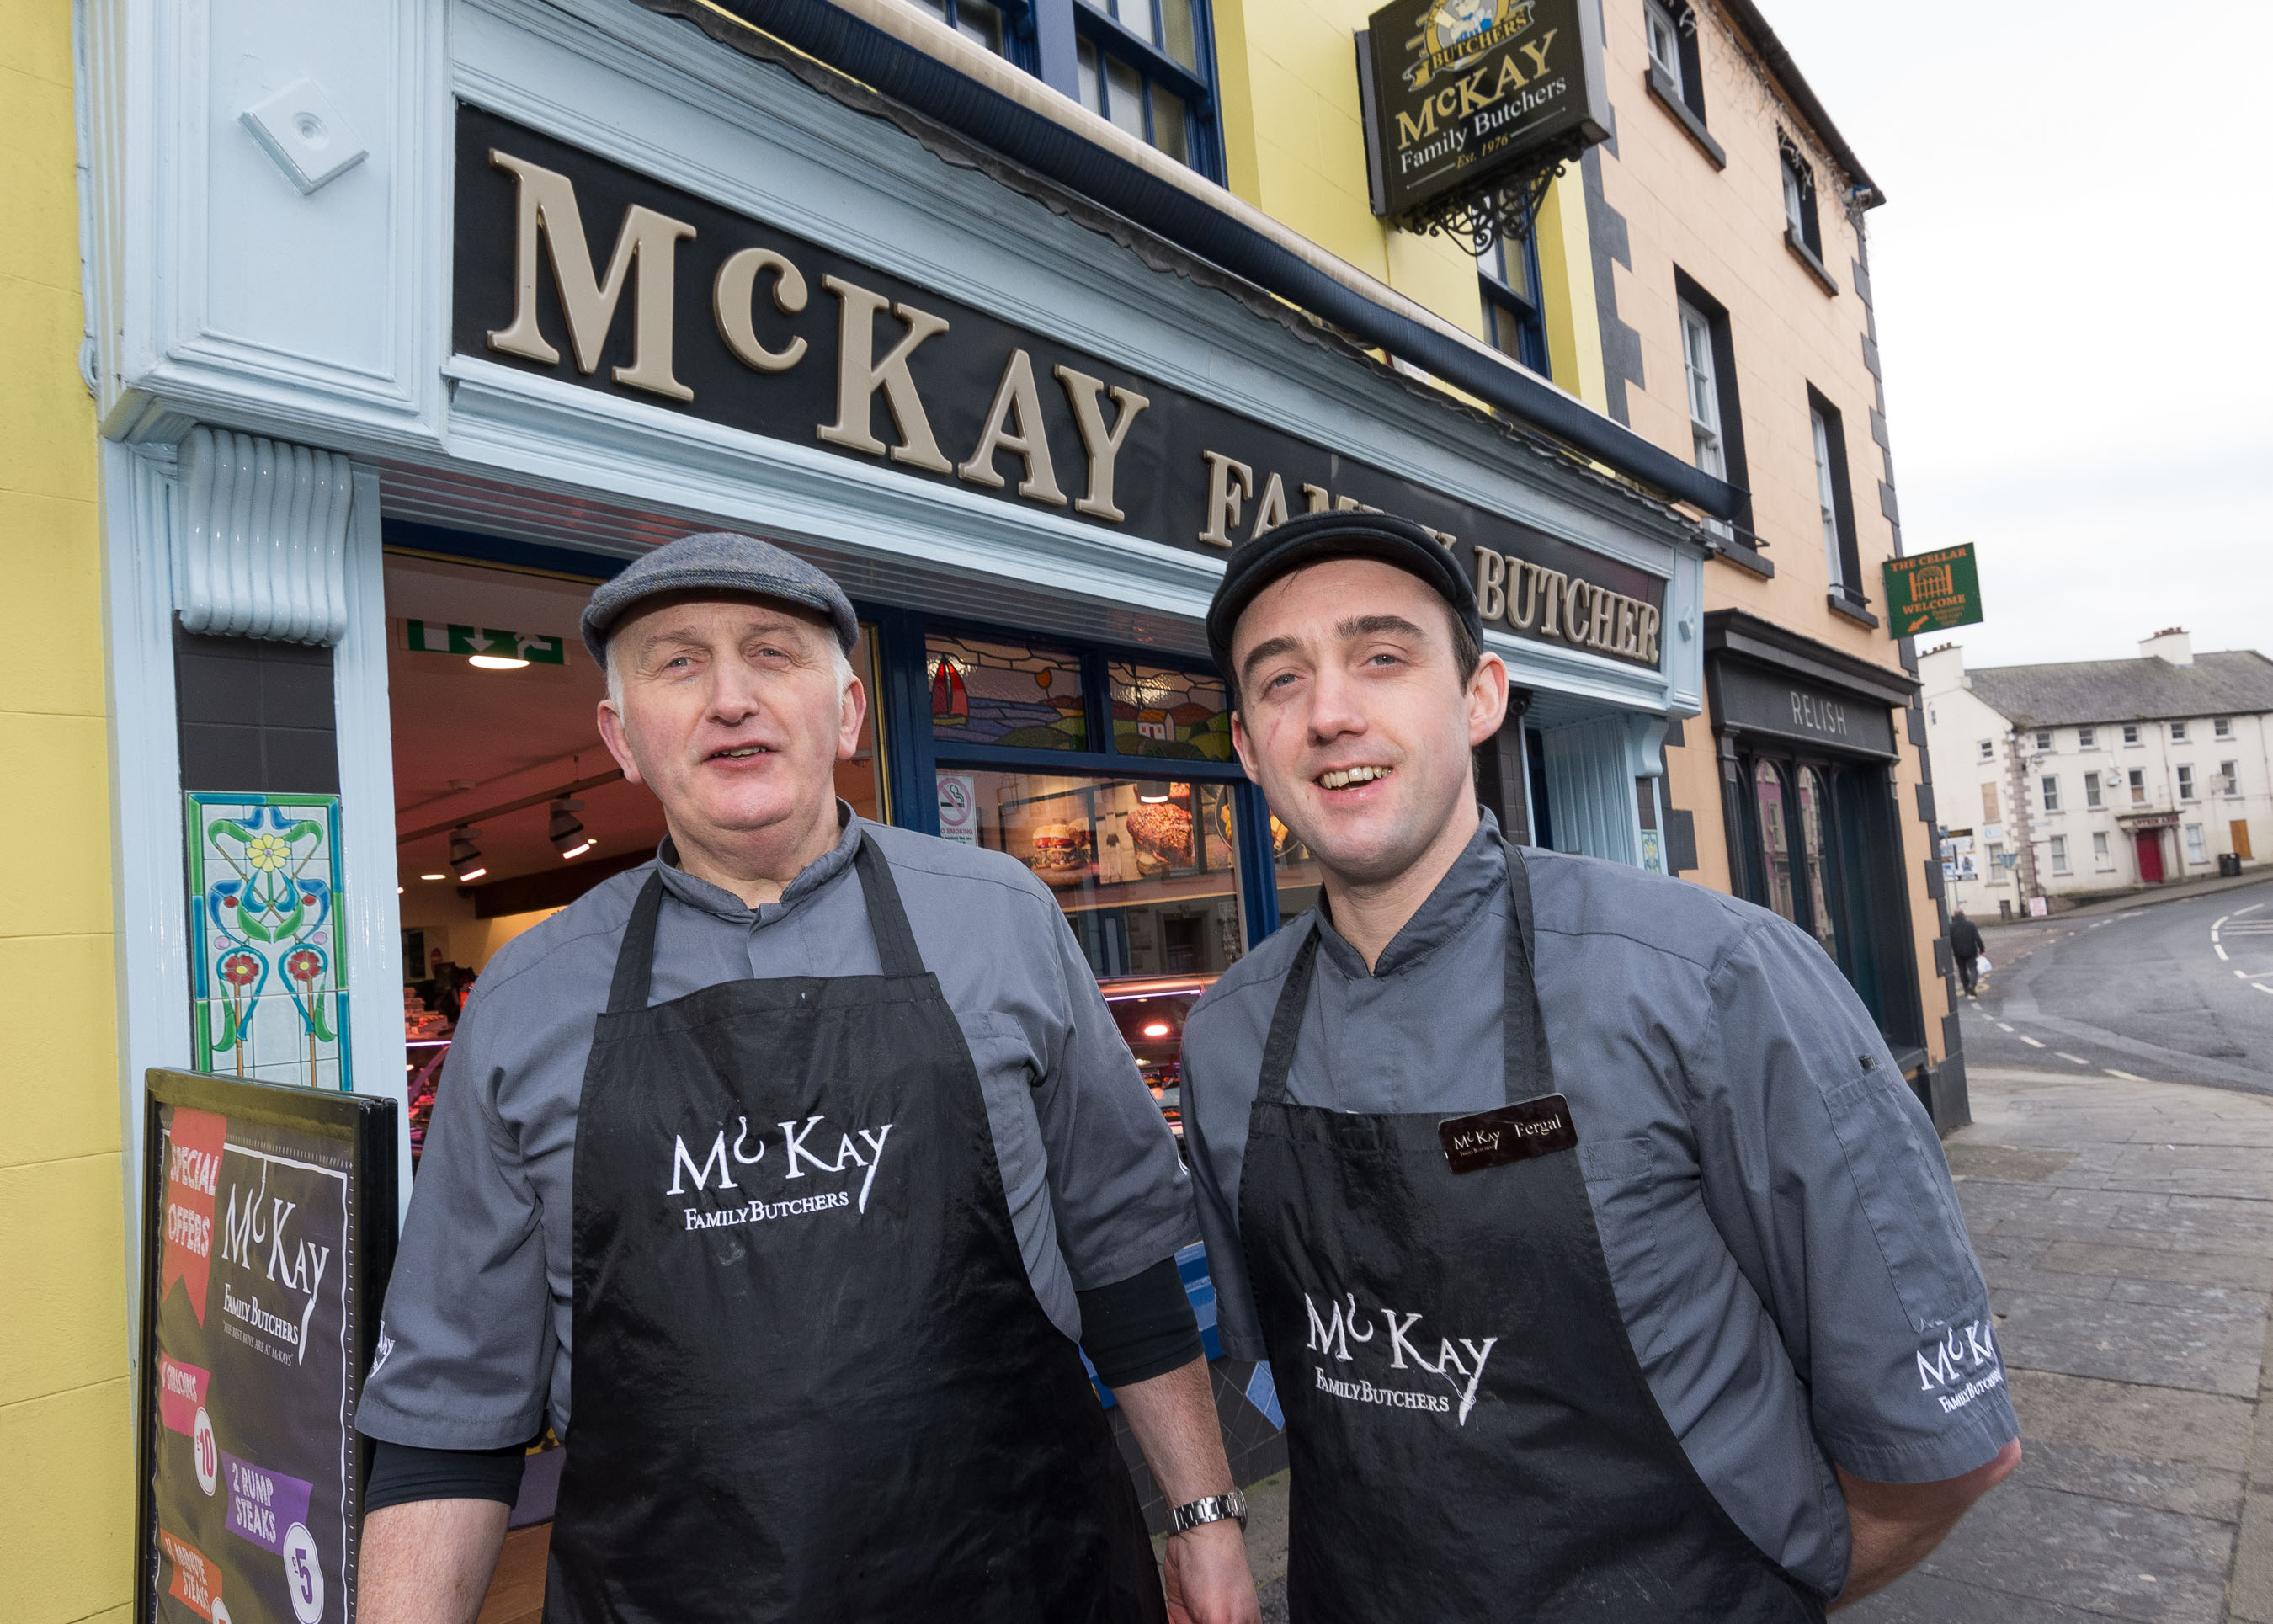 The personal touch wows customers at McKay Family Butchers